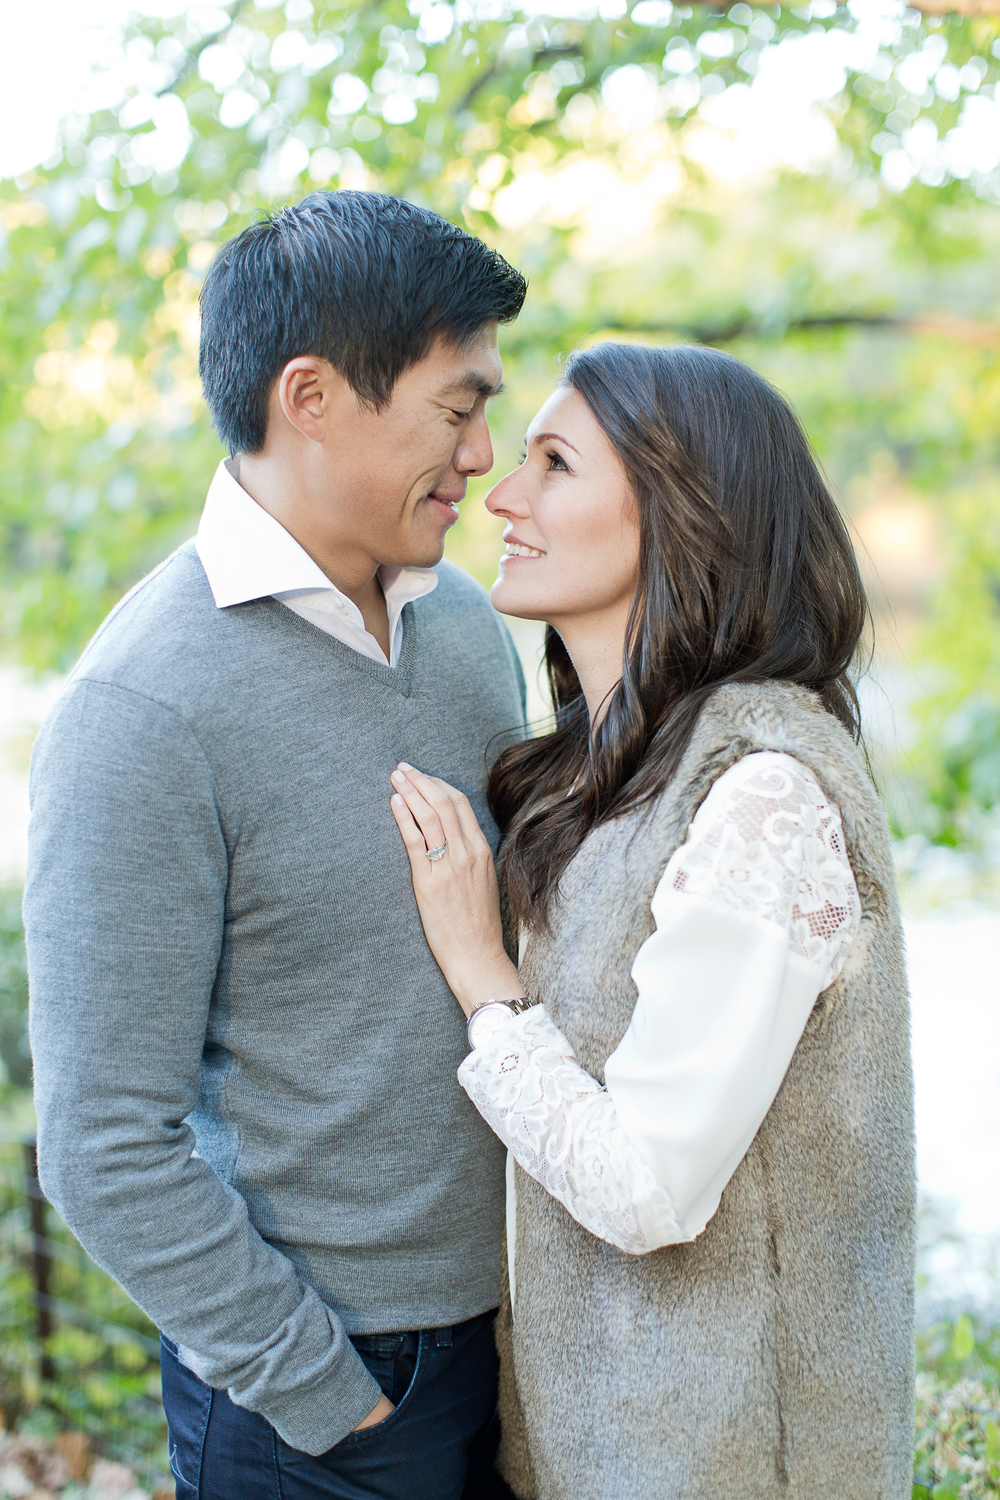 Melissa Kruse Photography - Emily + Kevin Engagement Session-148.jpg